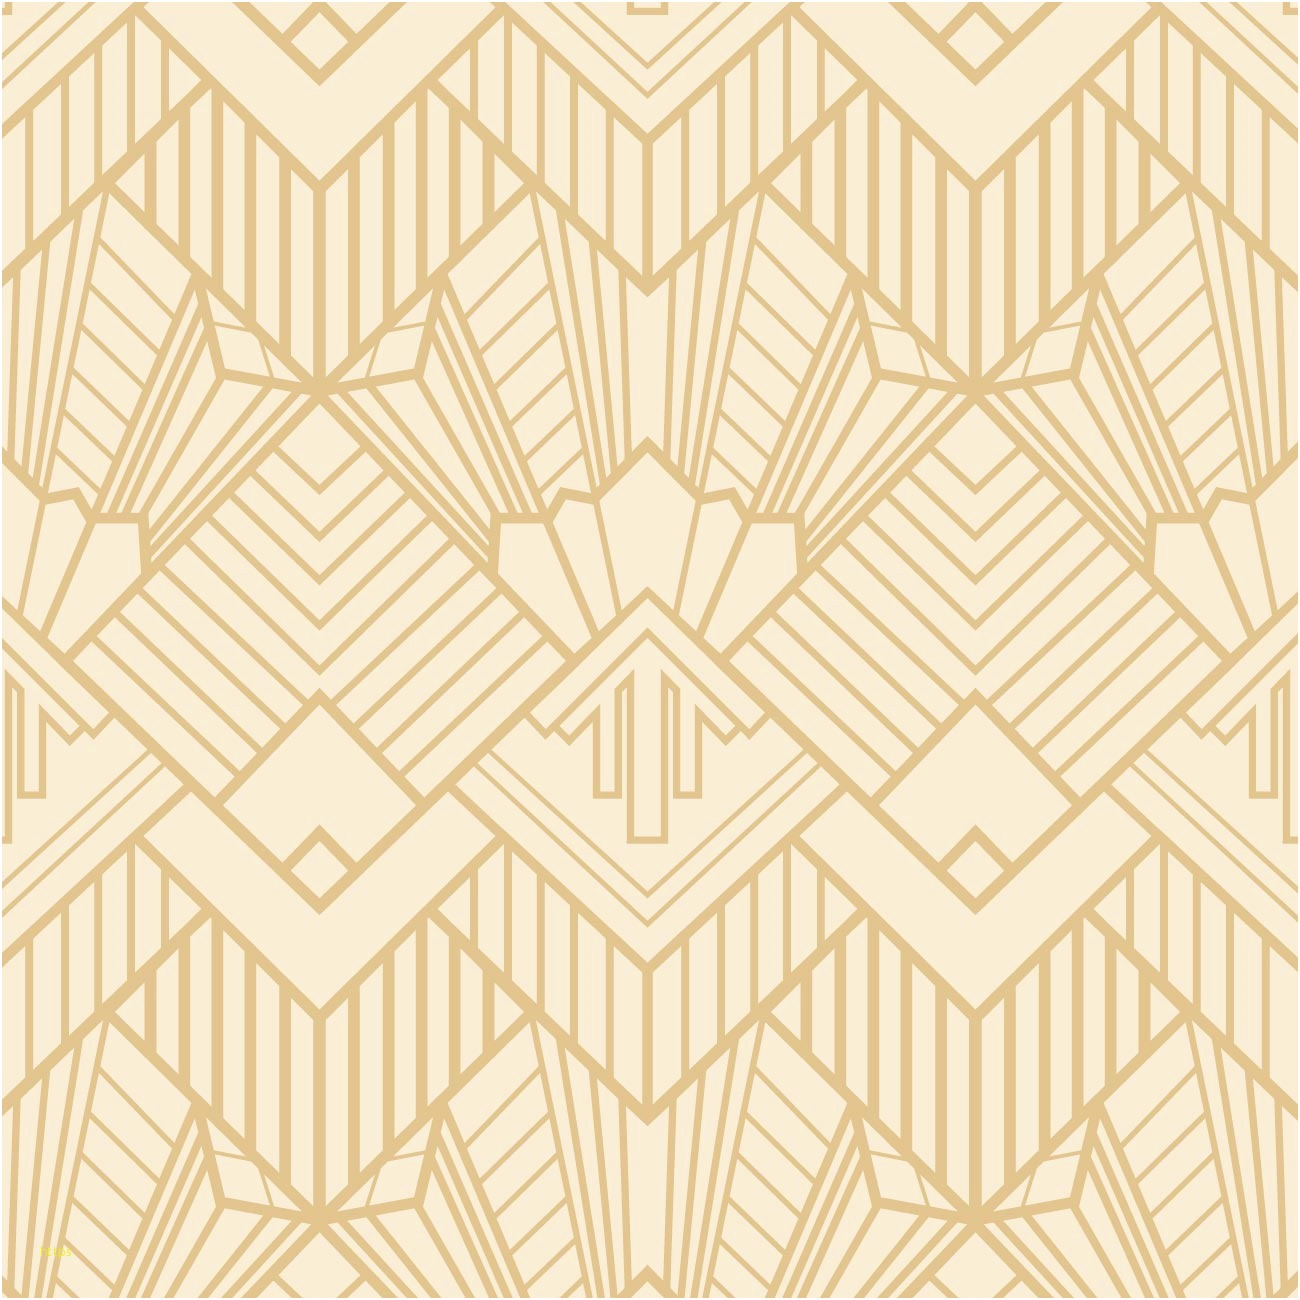 Art Deco Wallpaper Unique Schol Art Deco Geometric , Gold